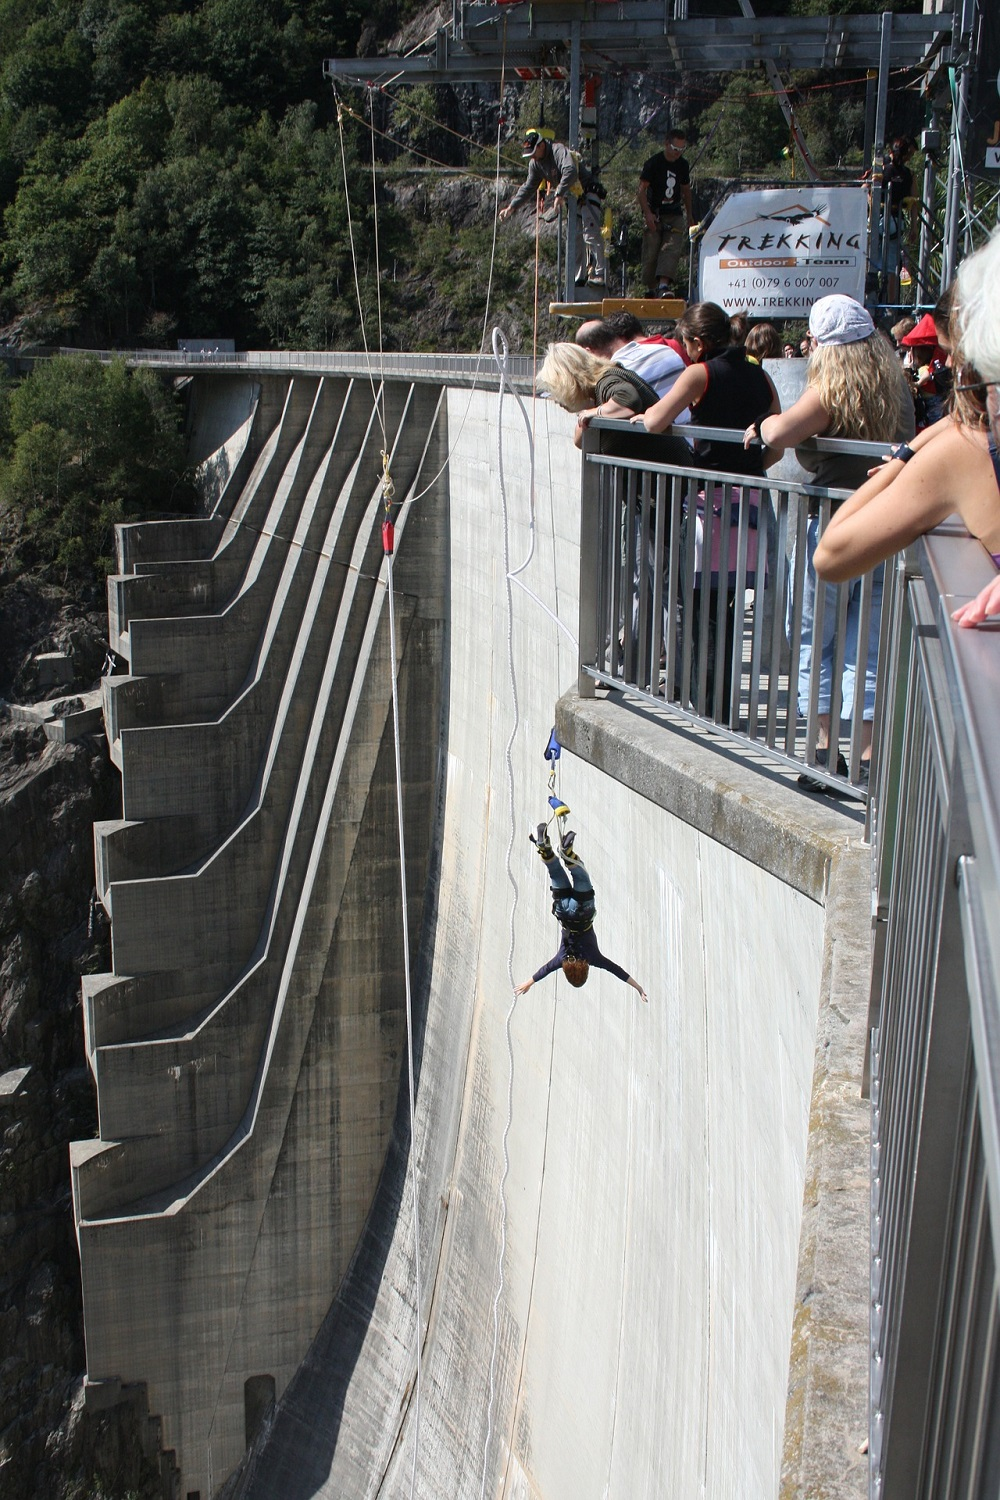 bungee-jumping-with-trekking-outdoor